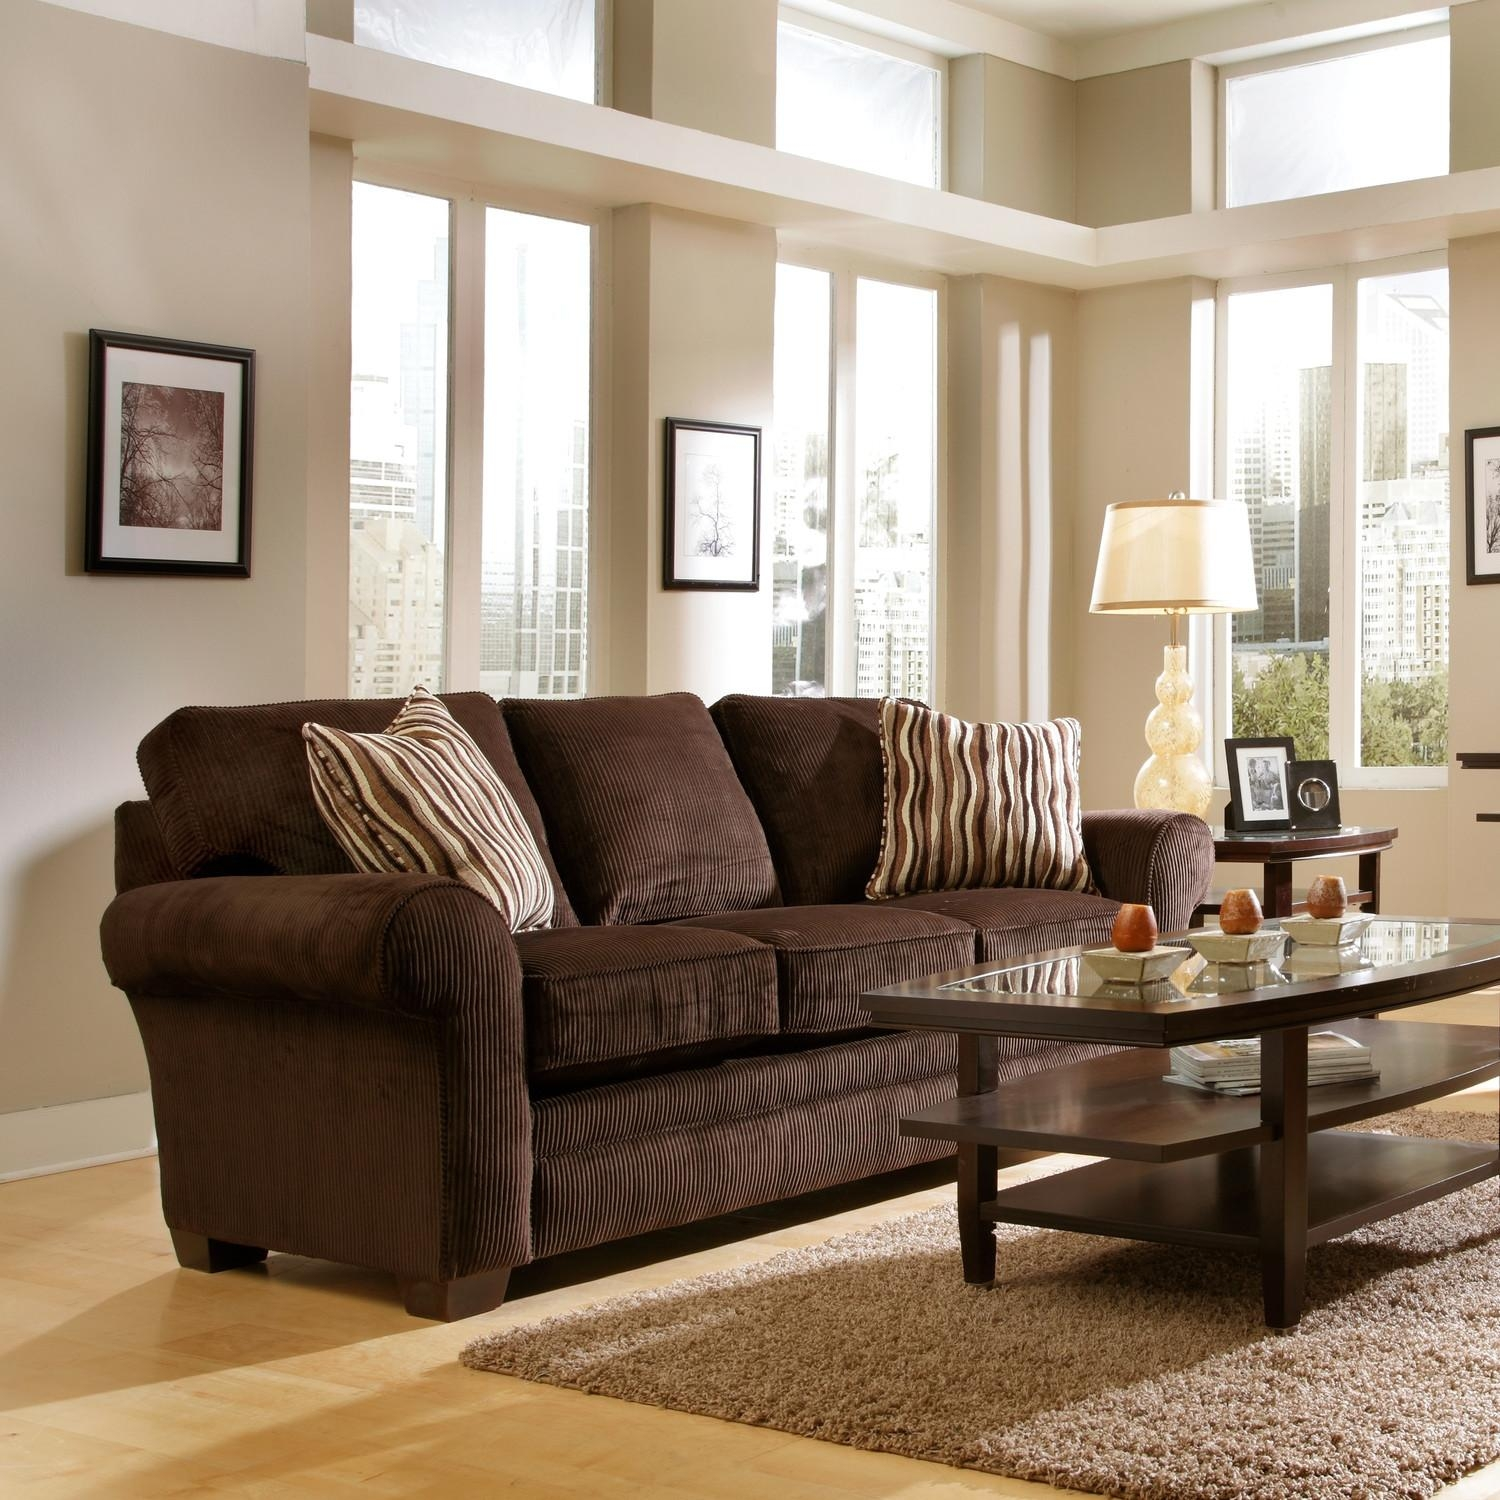 Interesting 90+ Chocolate Brown Sofa Living Room Ideas Decorating in Brown Sofa Decors